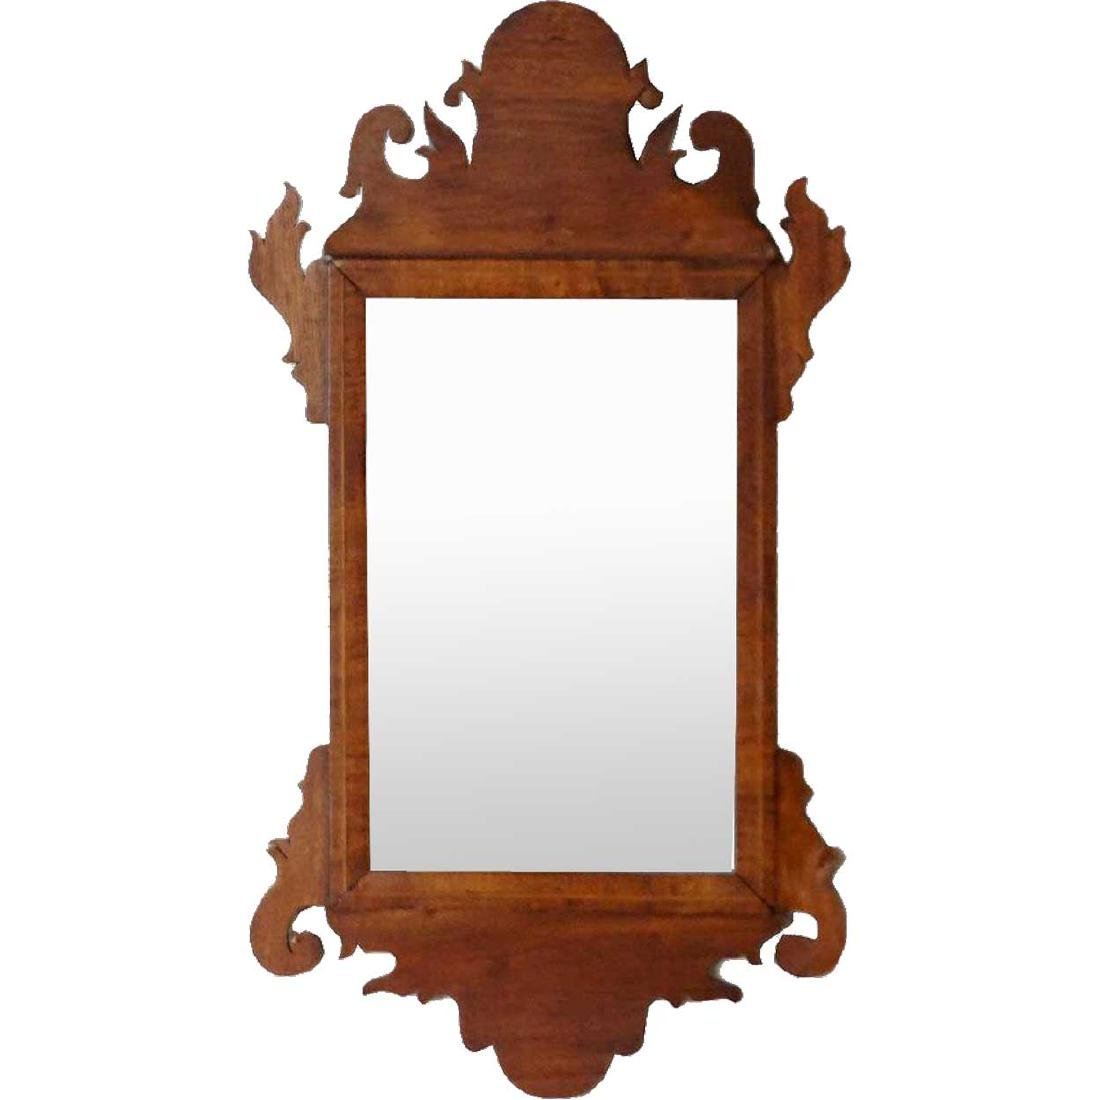 Small American Chippendale Inlaid Mahogany Mirror